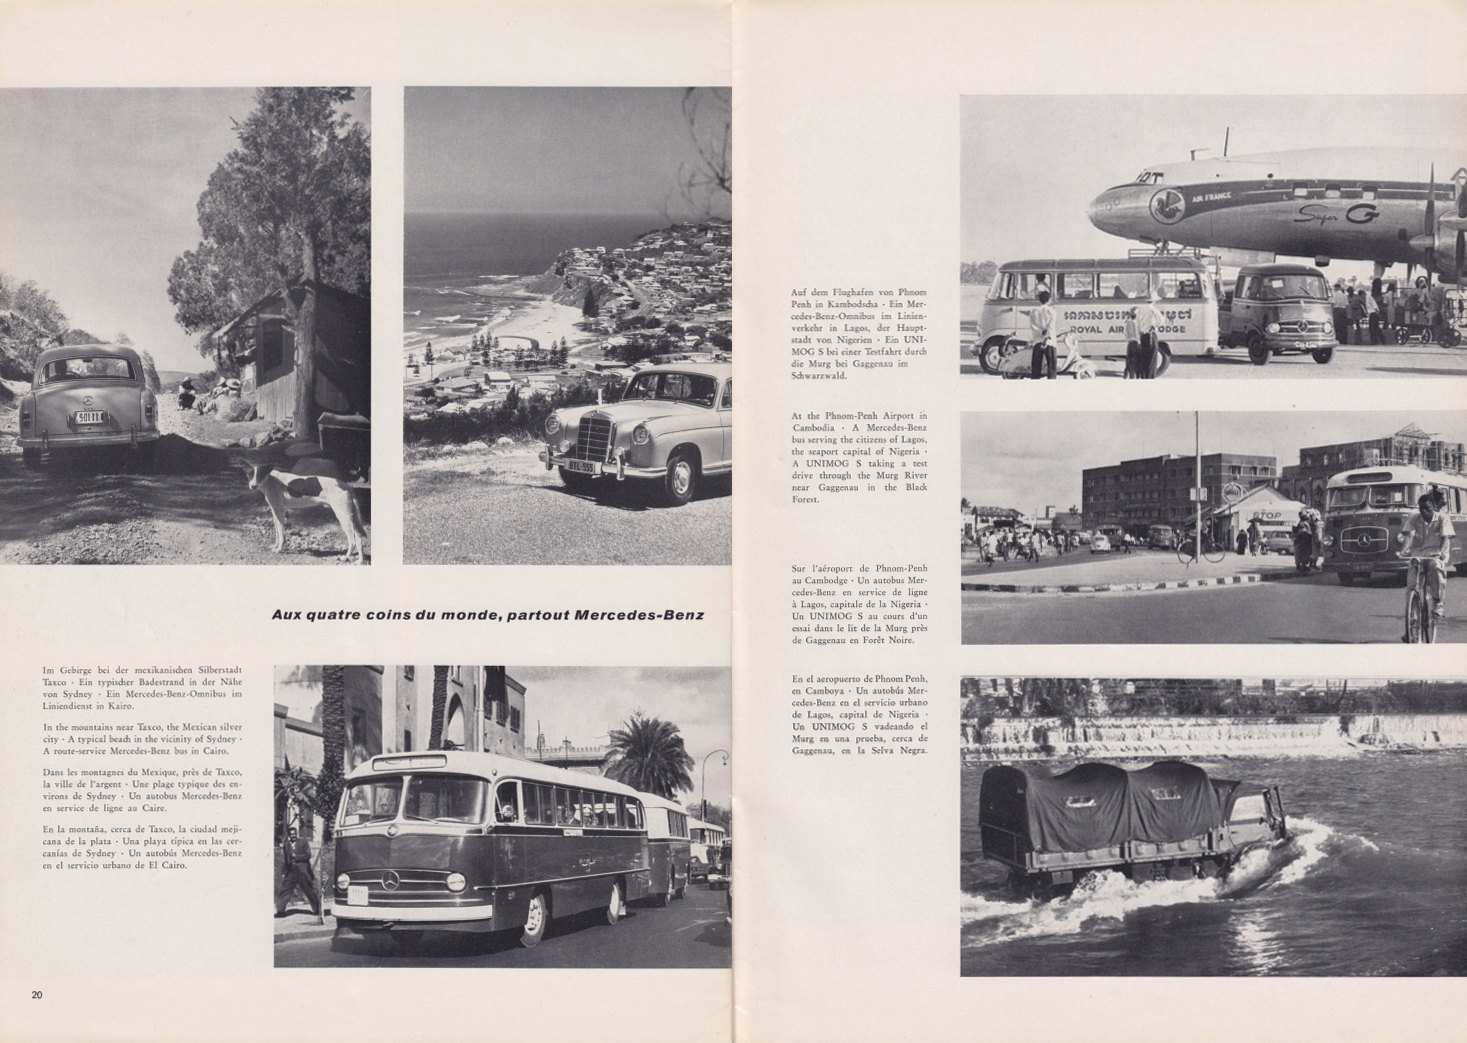 (REVISTA): Periódico In aller welt n.º 32 - Mercedes-Benz no mundo - 1959 - multilingue 011